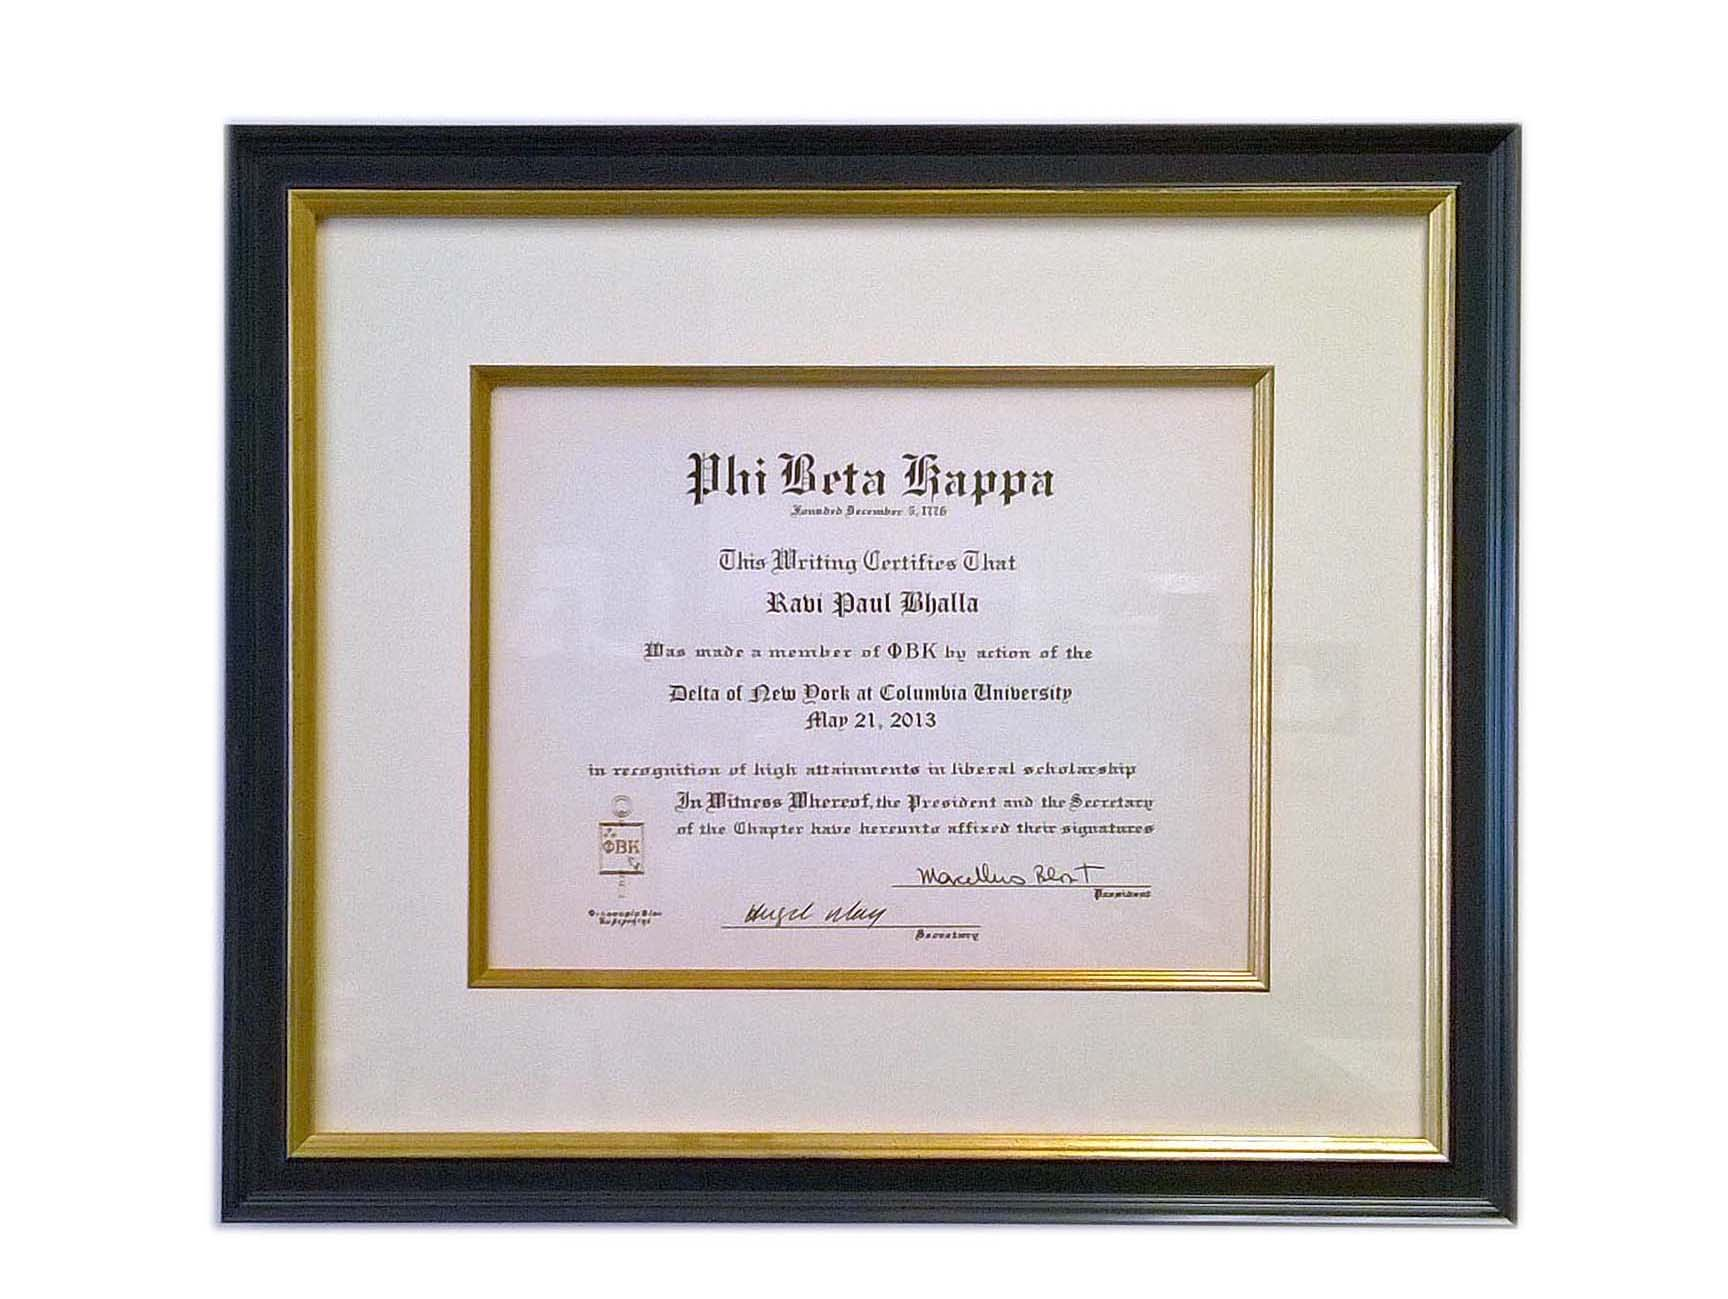 Economical diploma framed